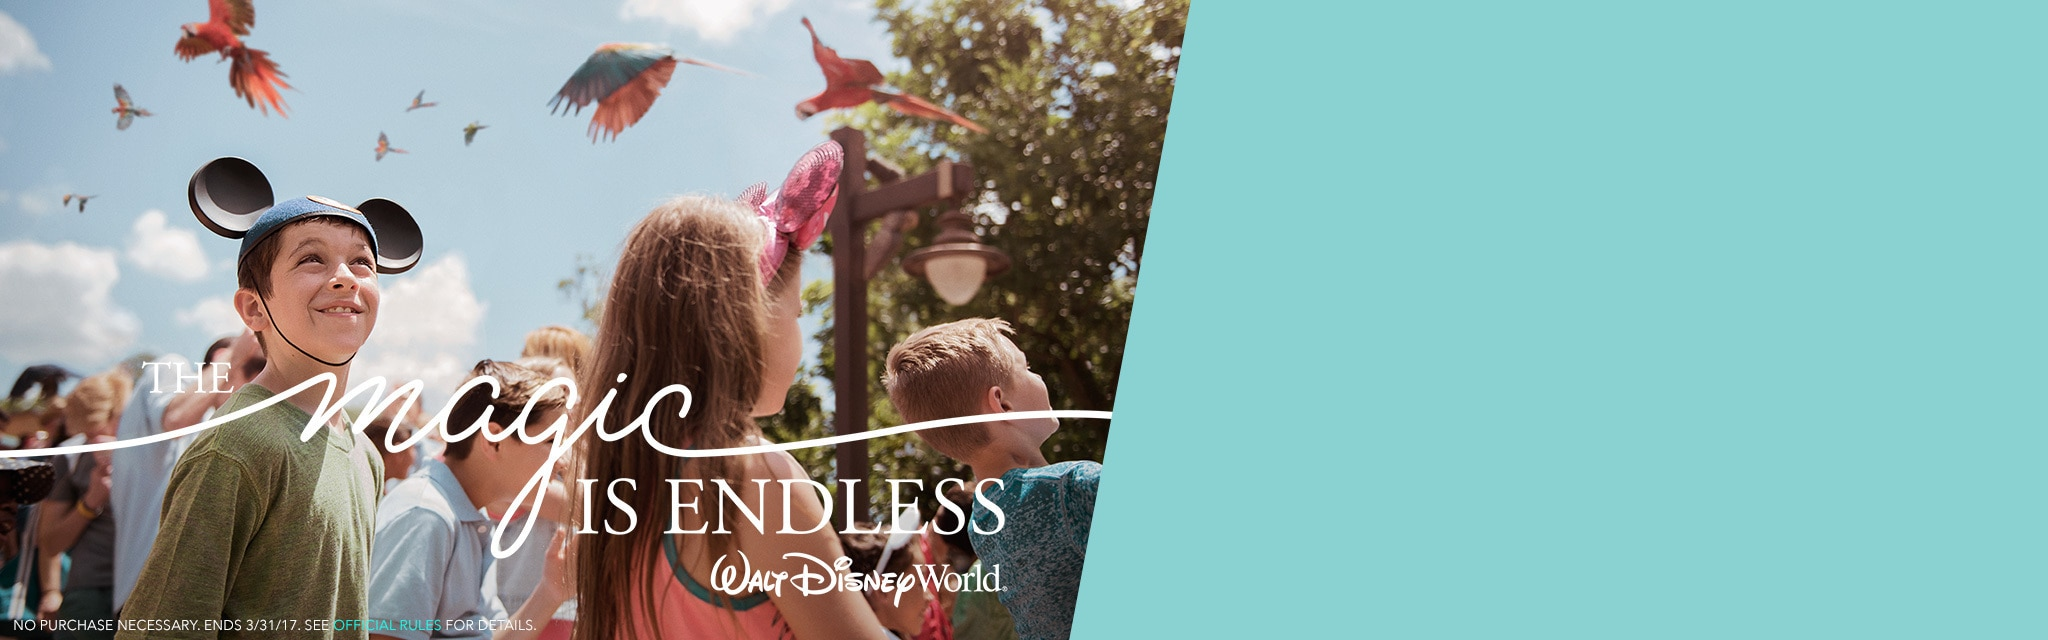 Disney Parks - WDW | Be Our Guest to Endless Magic Sweepstakes - Hero